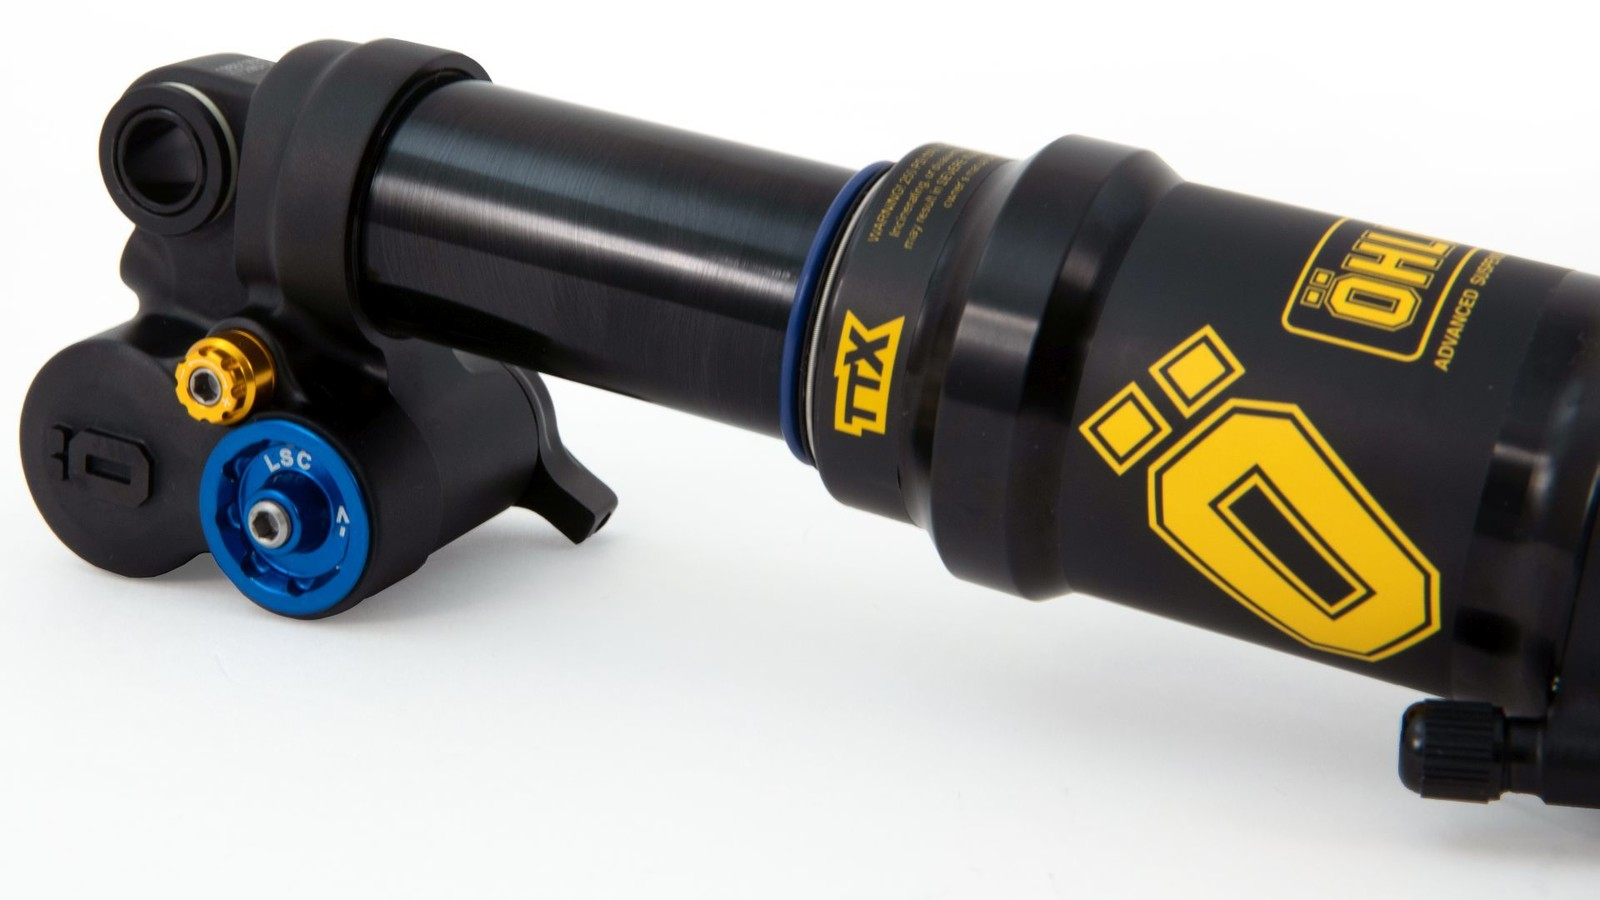 ÖHLINS Upgrades TTXAir Platform for All Suspension Linkage Types